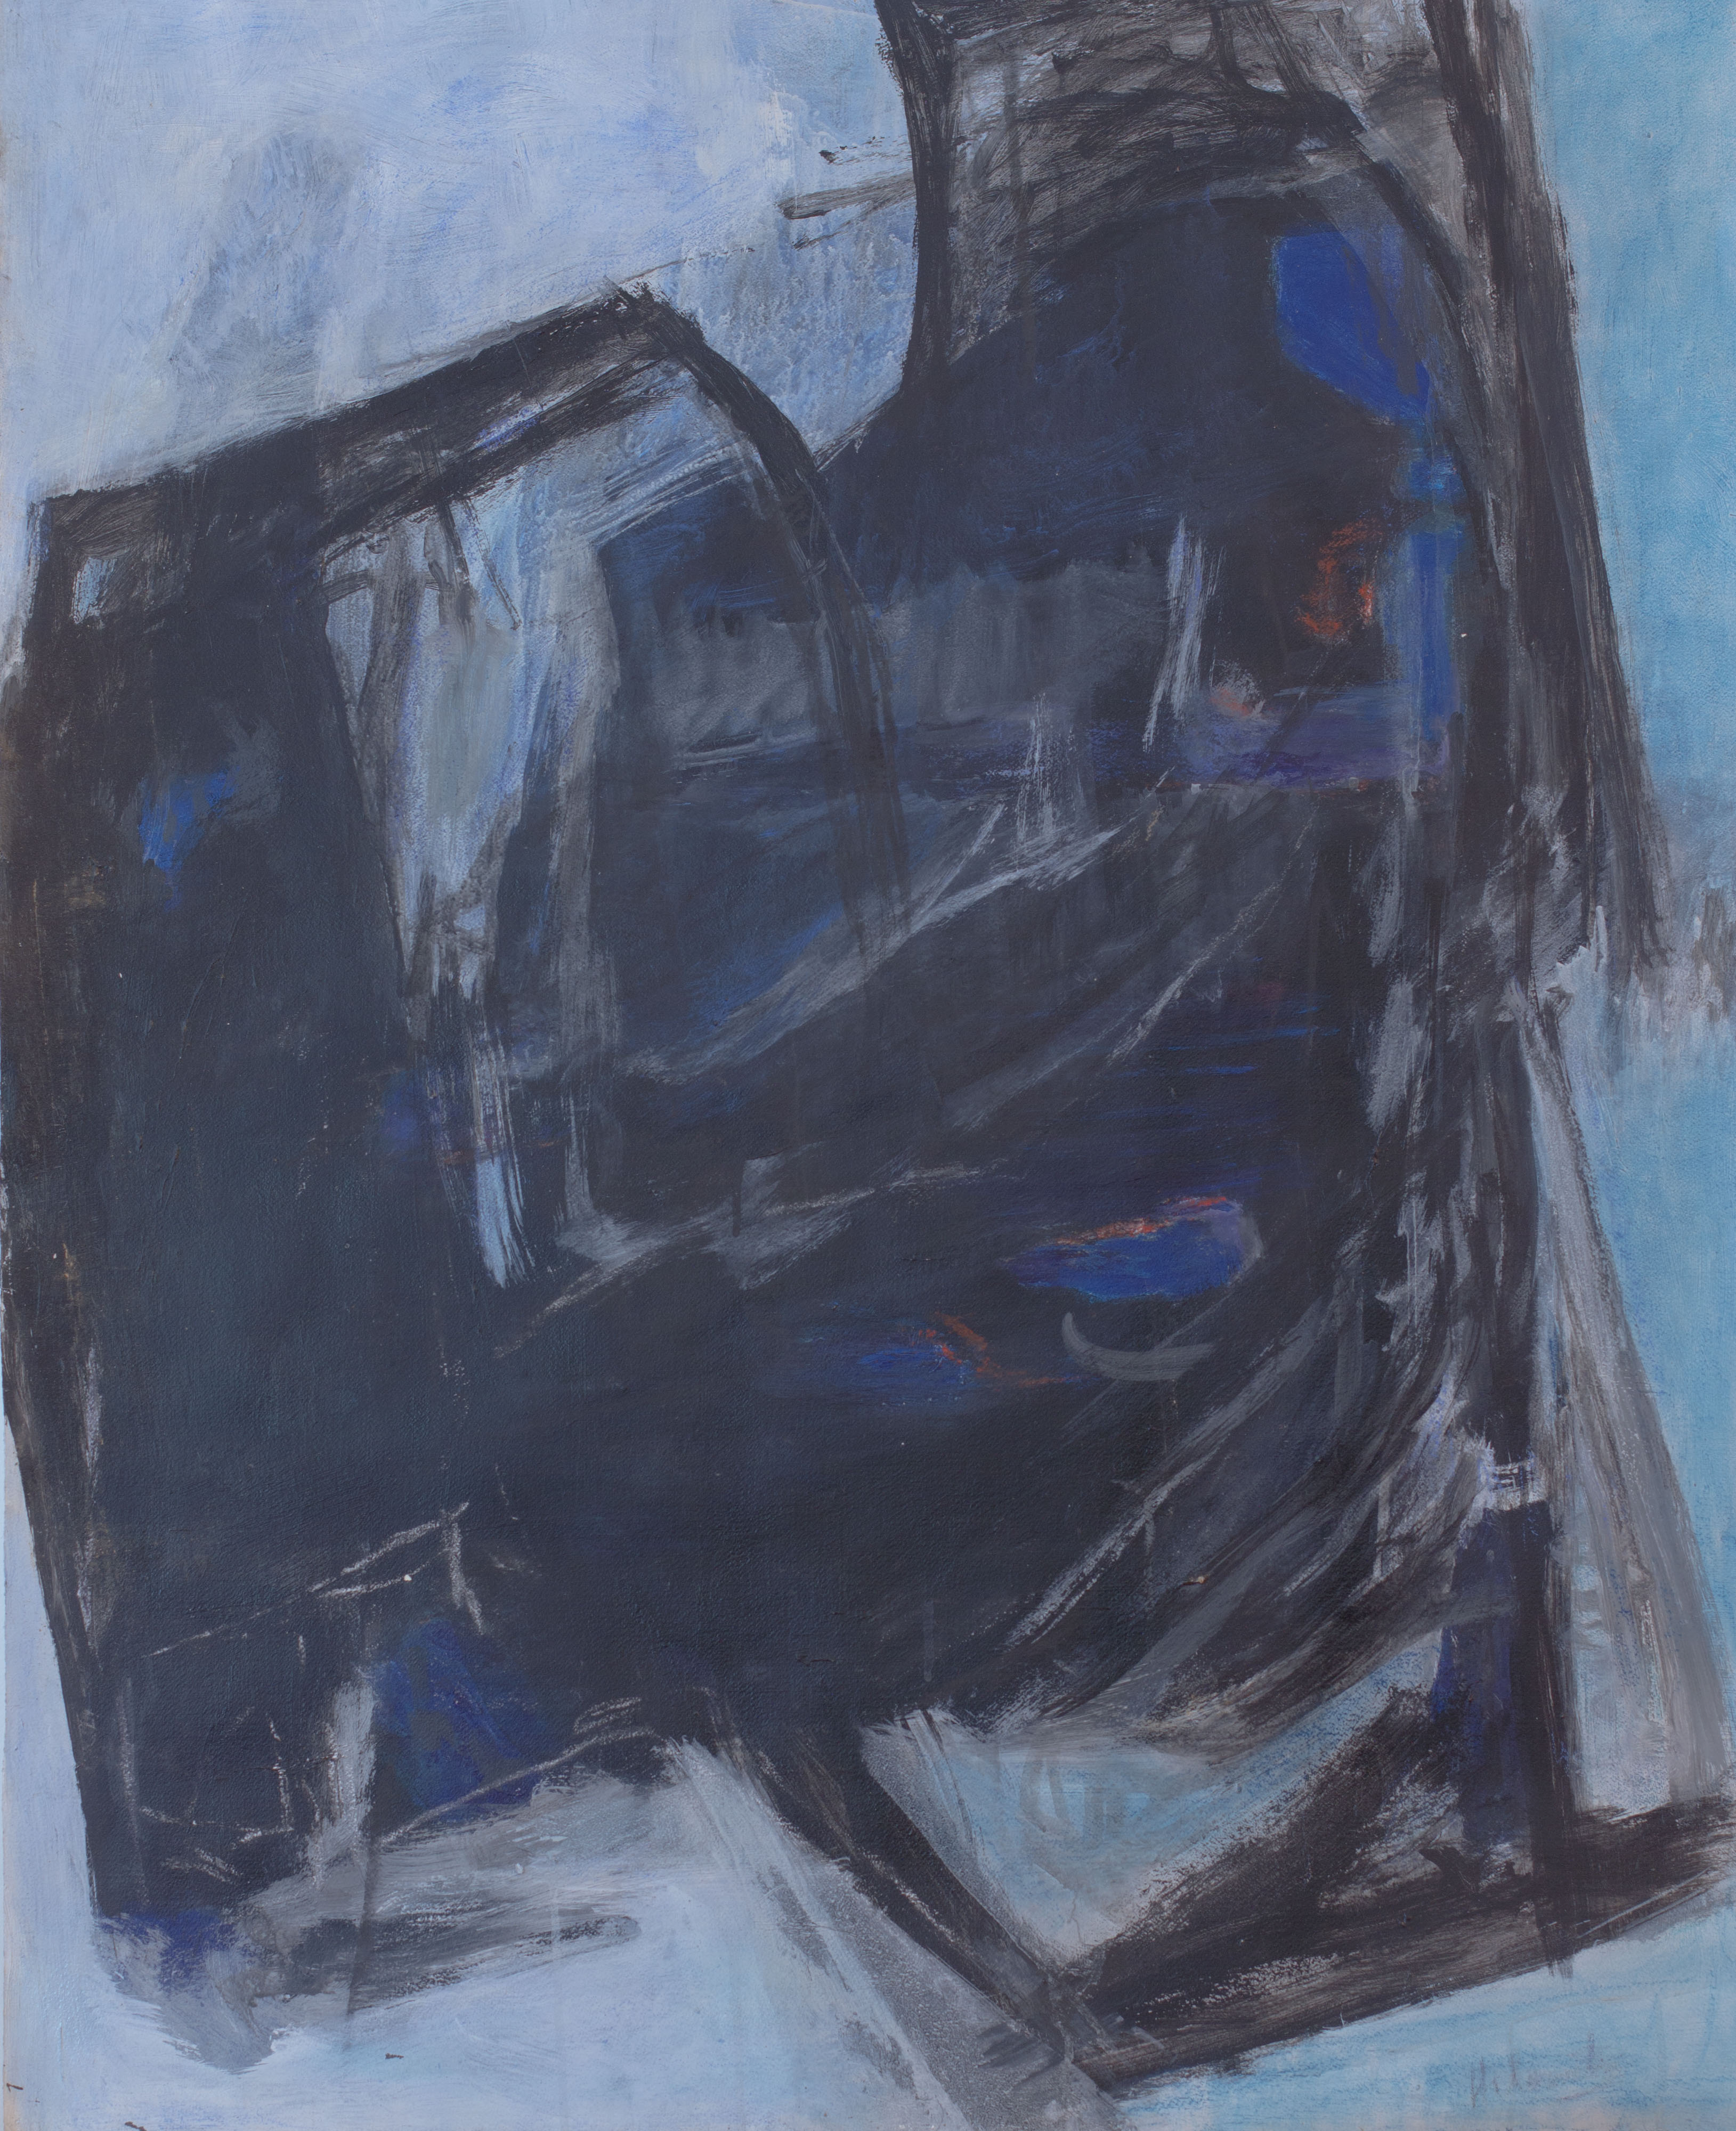 Painting: Buried Blue (#31) by Eleanor Hilowitz (1913 - 2007)